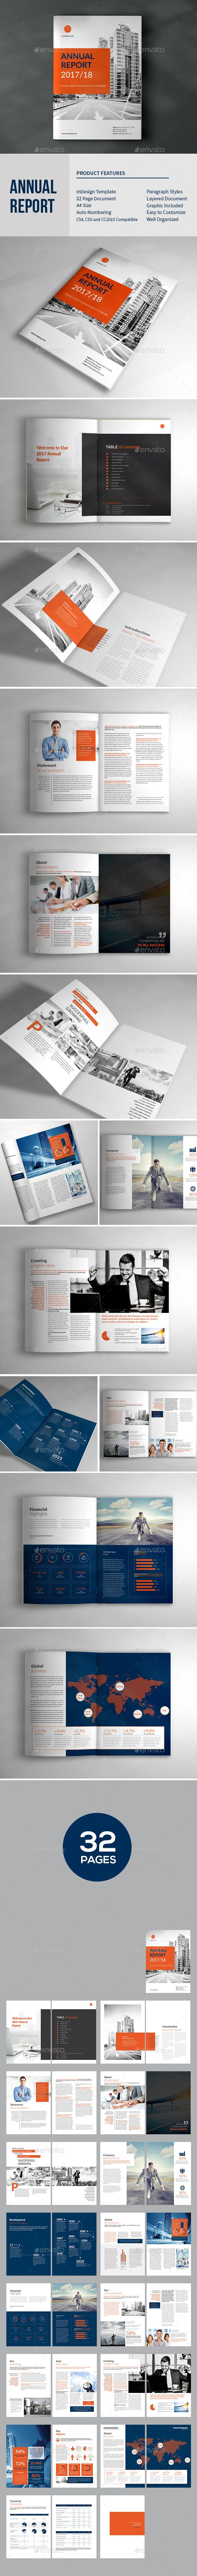 Annual Report Template Brochure — InDesign INDD #trendy #company brochure • Available here ➝ https://graphicriver.net/item/annual-report-template-brochure/21006731?ref=pxcr